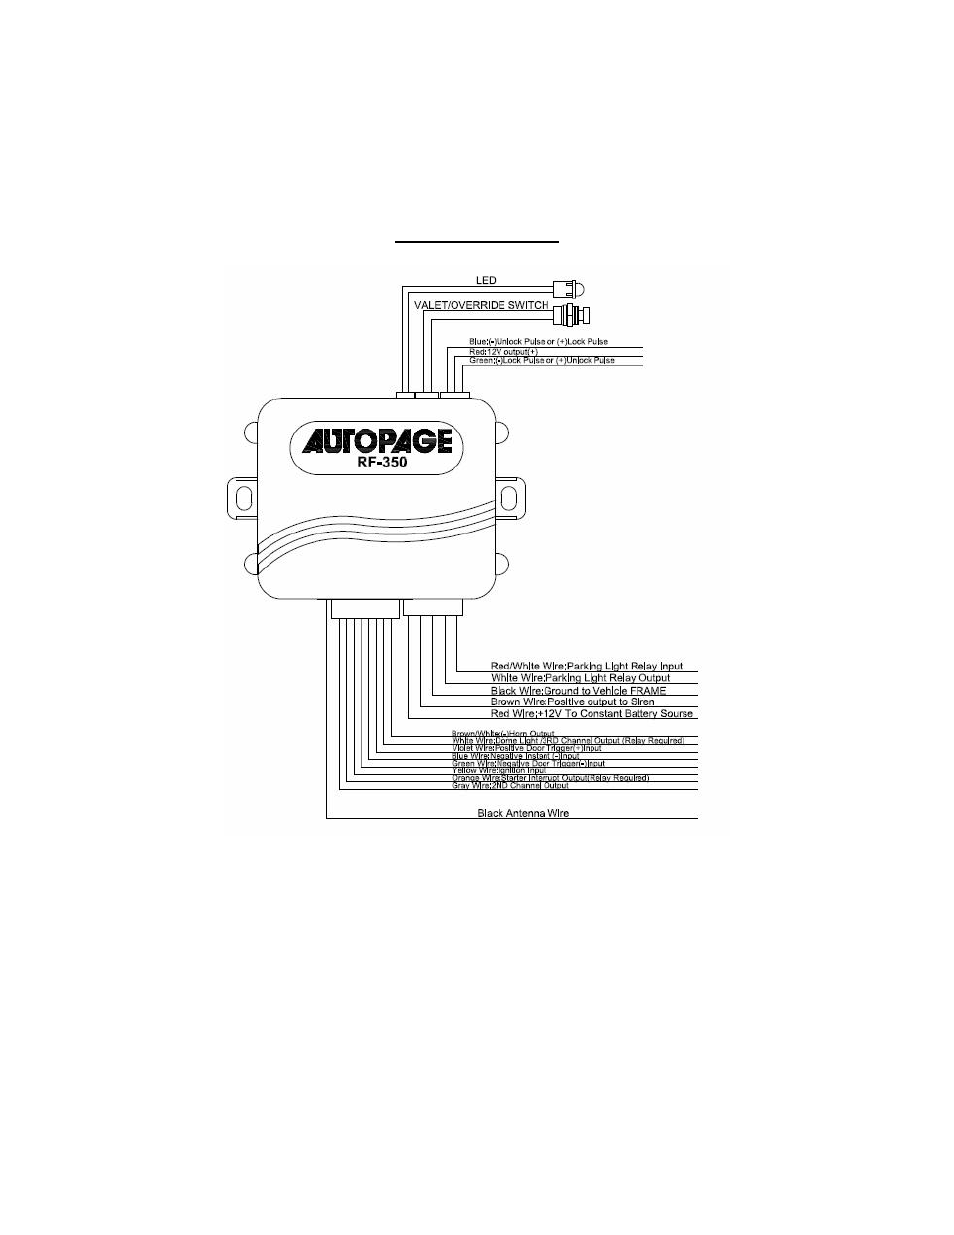 Autopage Wiring Diagram Valet Auto Page Rf 350 User Manual 2 16autopage 13